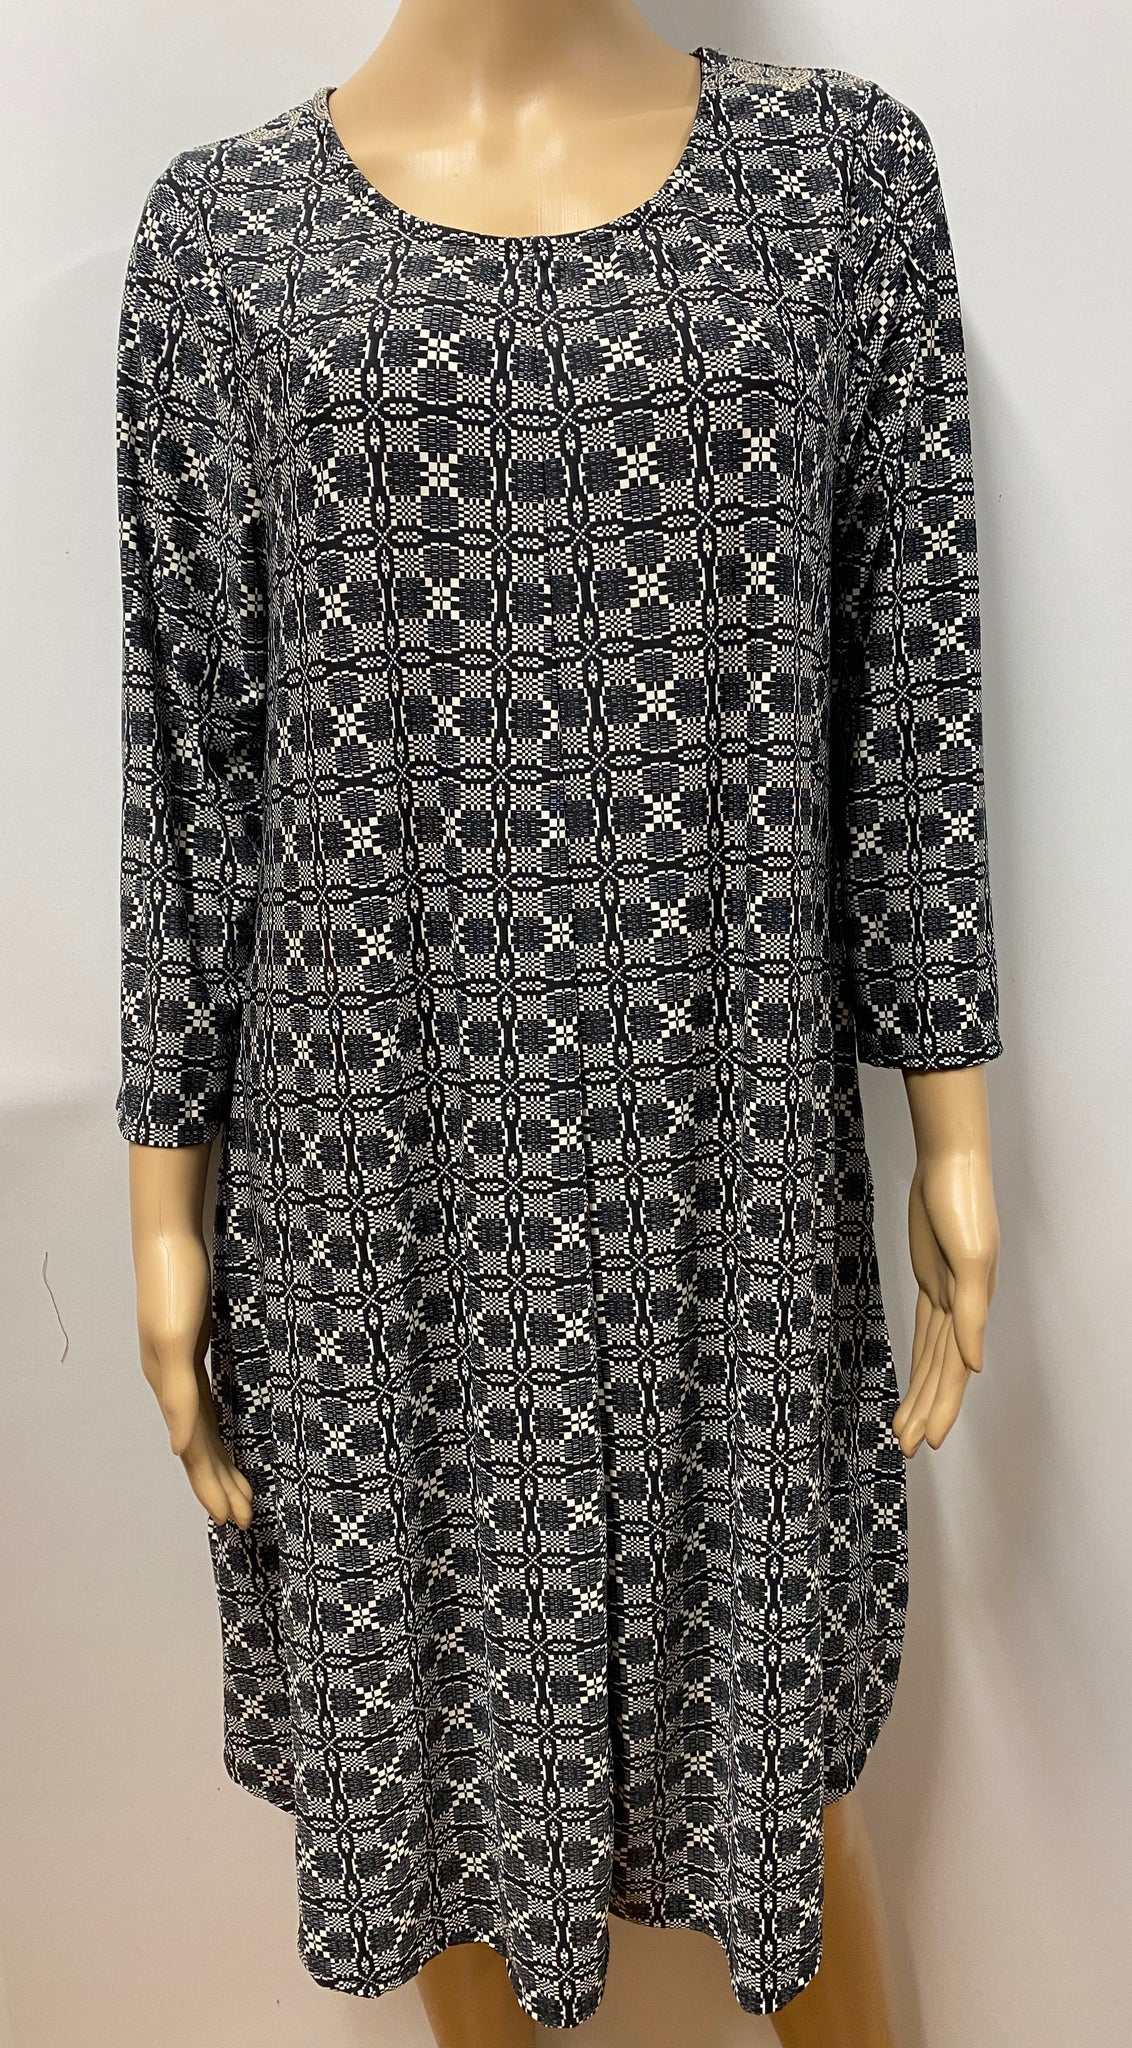 Printed Knee Length Dress with 3/4 Sleeves and Pockets